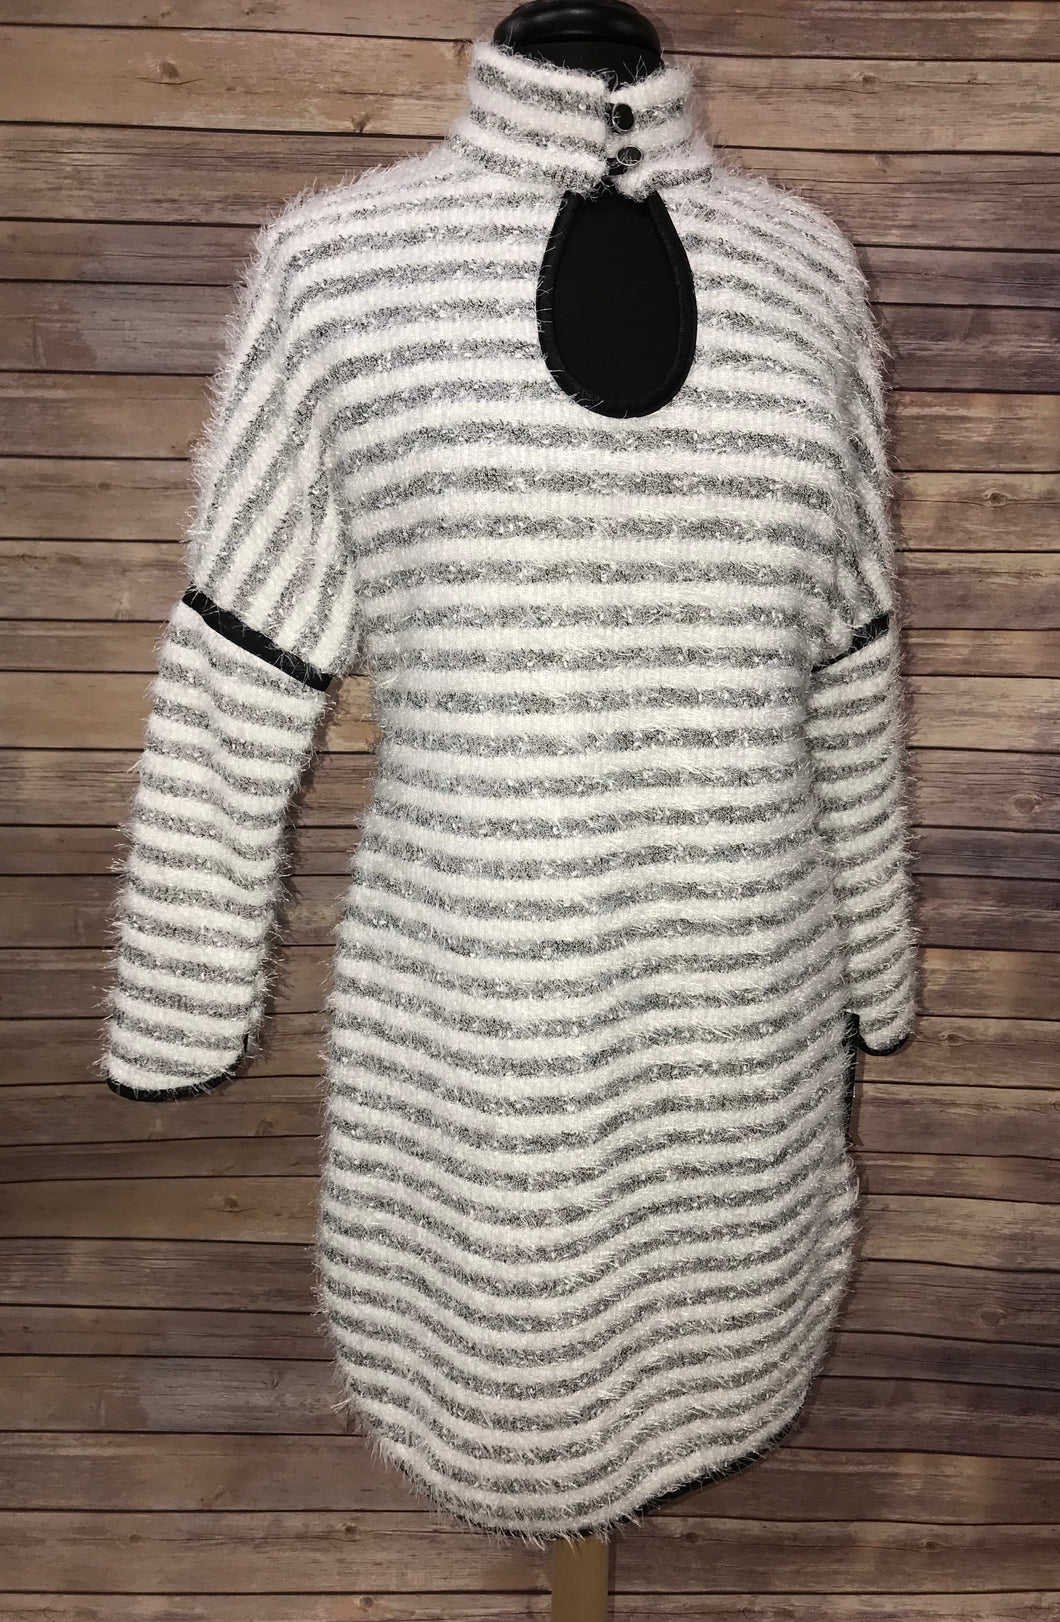 SALE - Artex Knit Dress